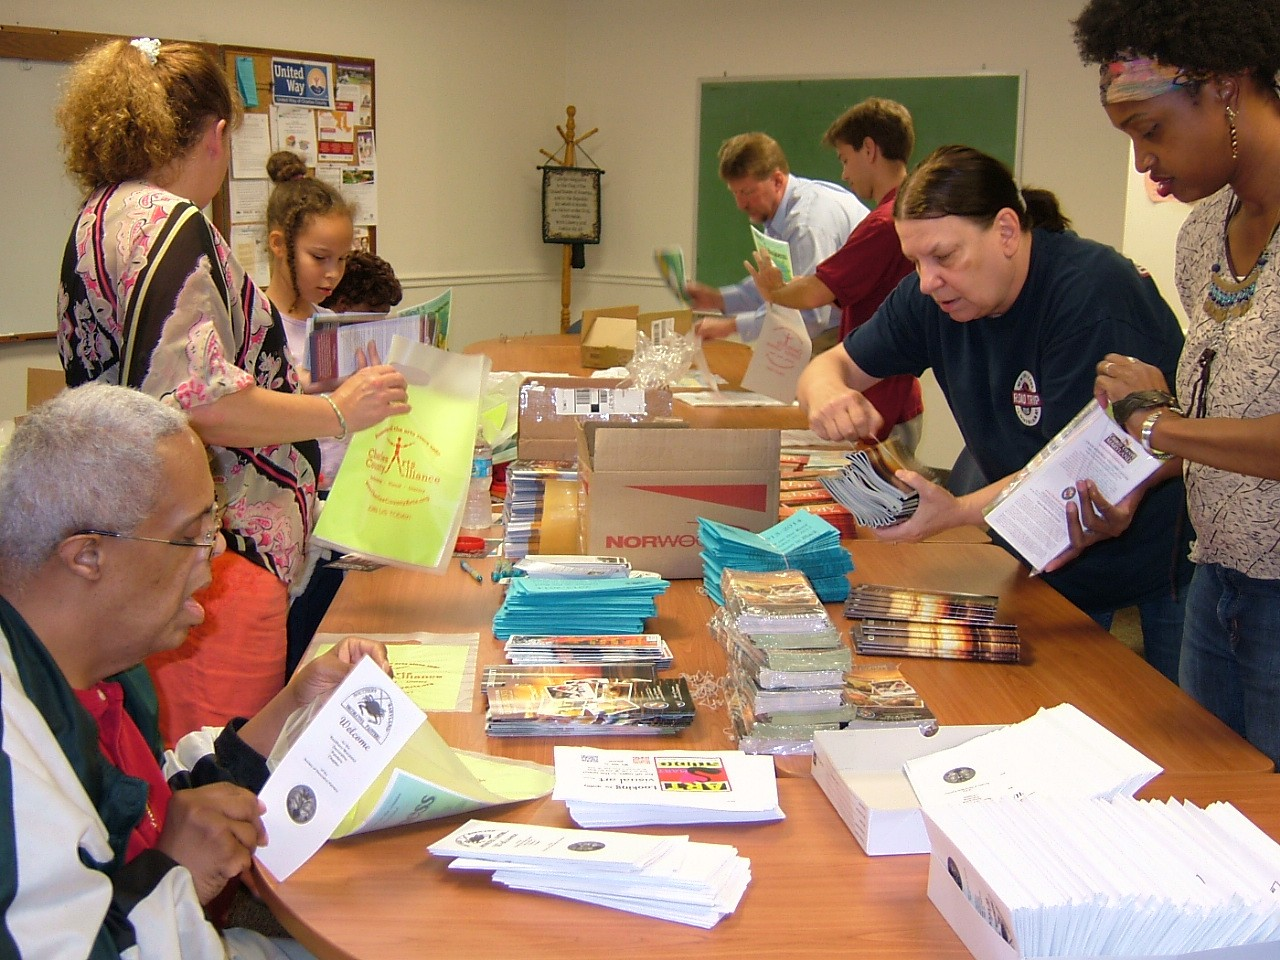 Assembling Arts Bags for the County Fair 2013